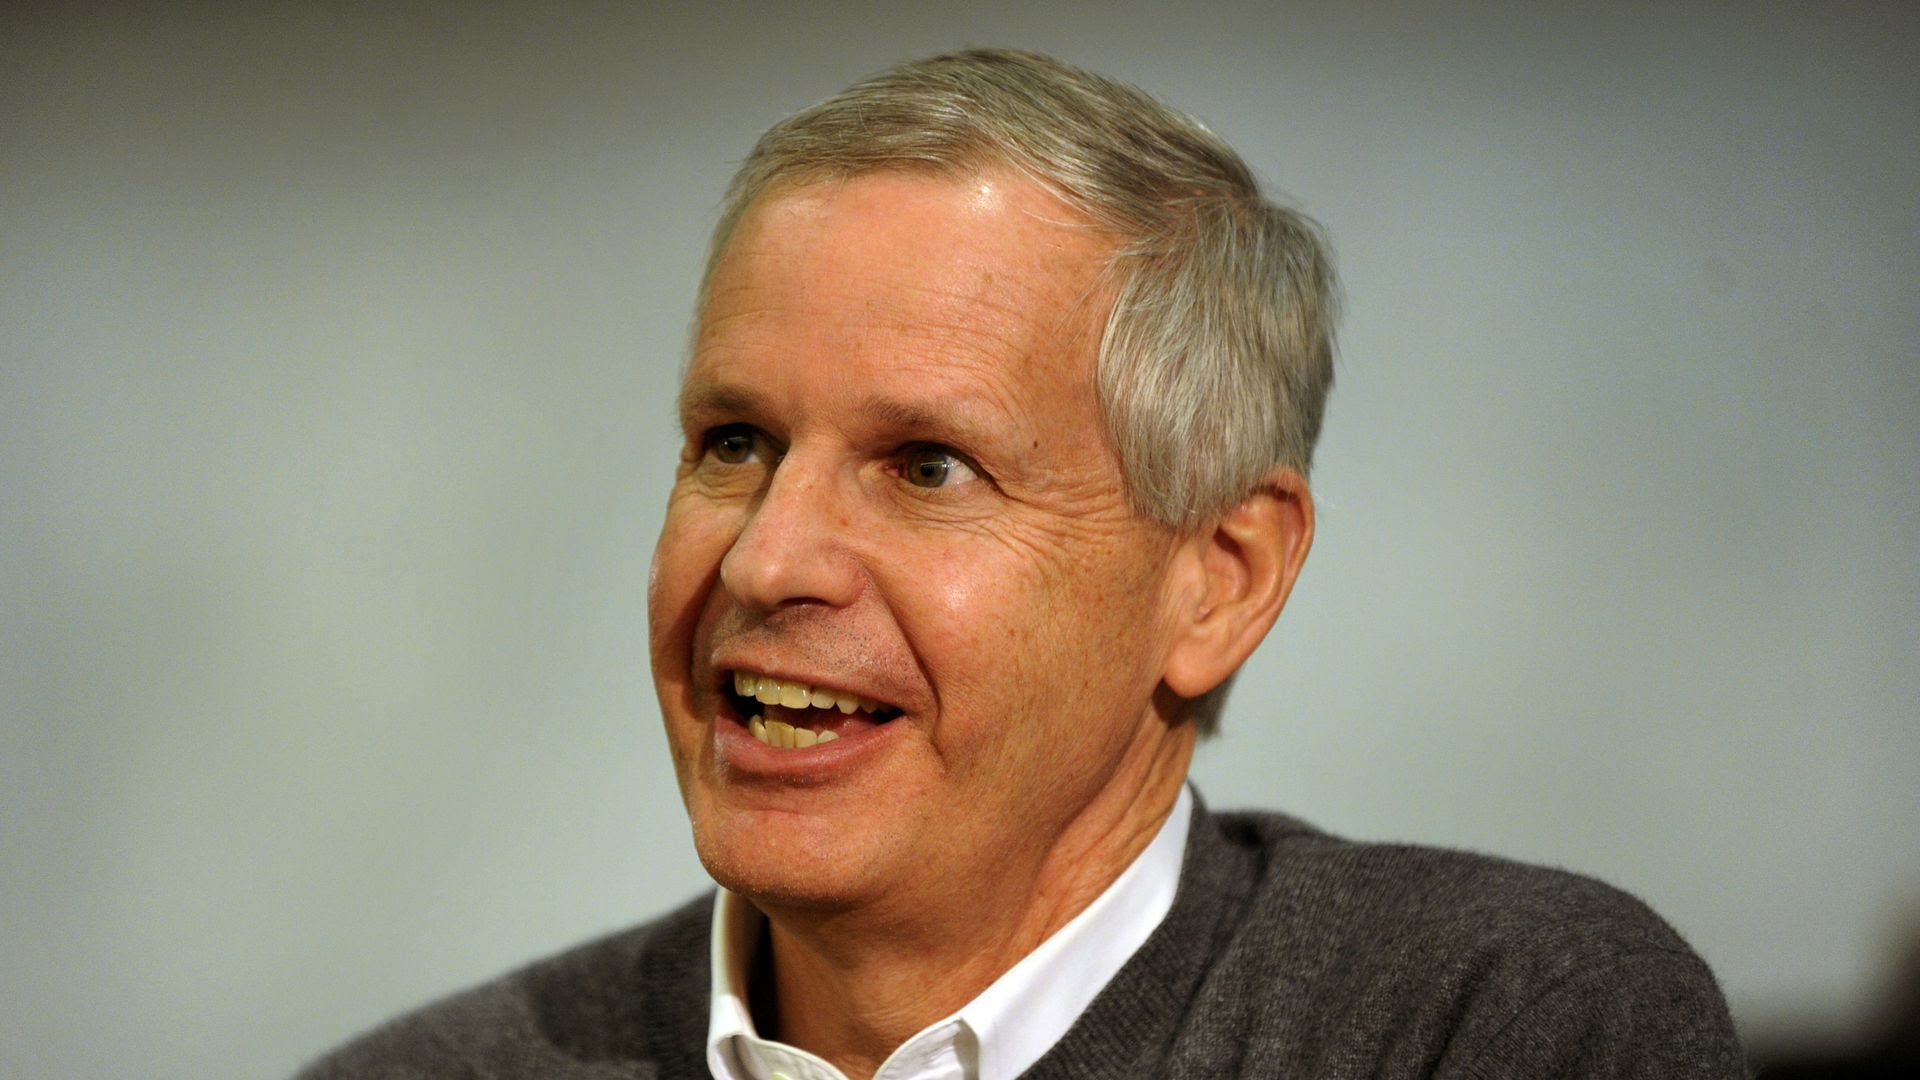 Dish Network chairman Charlie Ergen speaking at the University of Colorado in 2012. Photo: Karl Gehring/The Denver Post via Getty Images